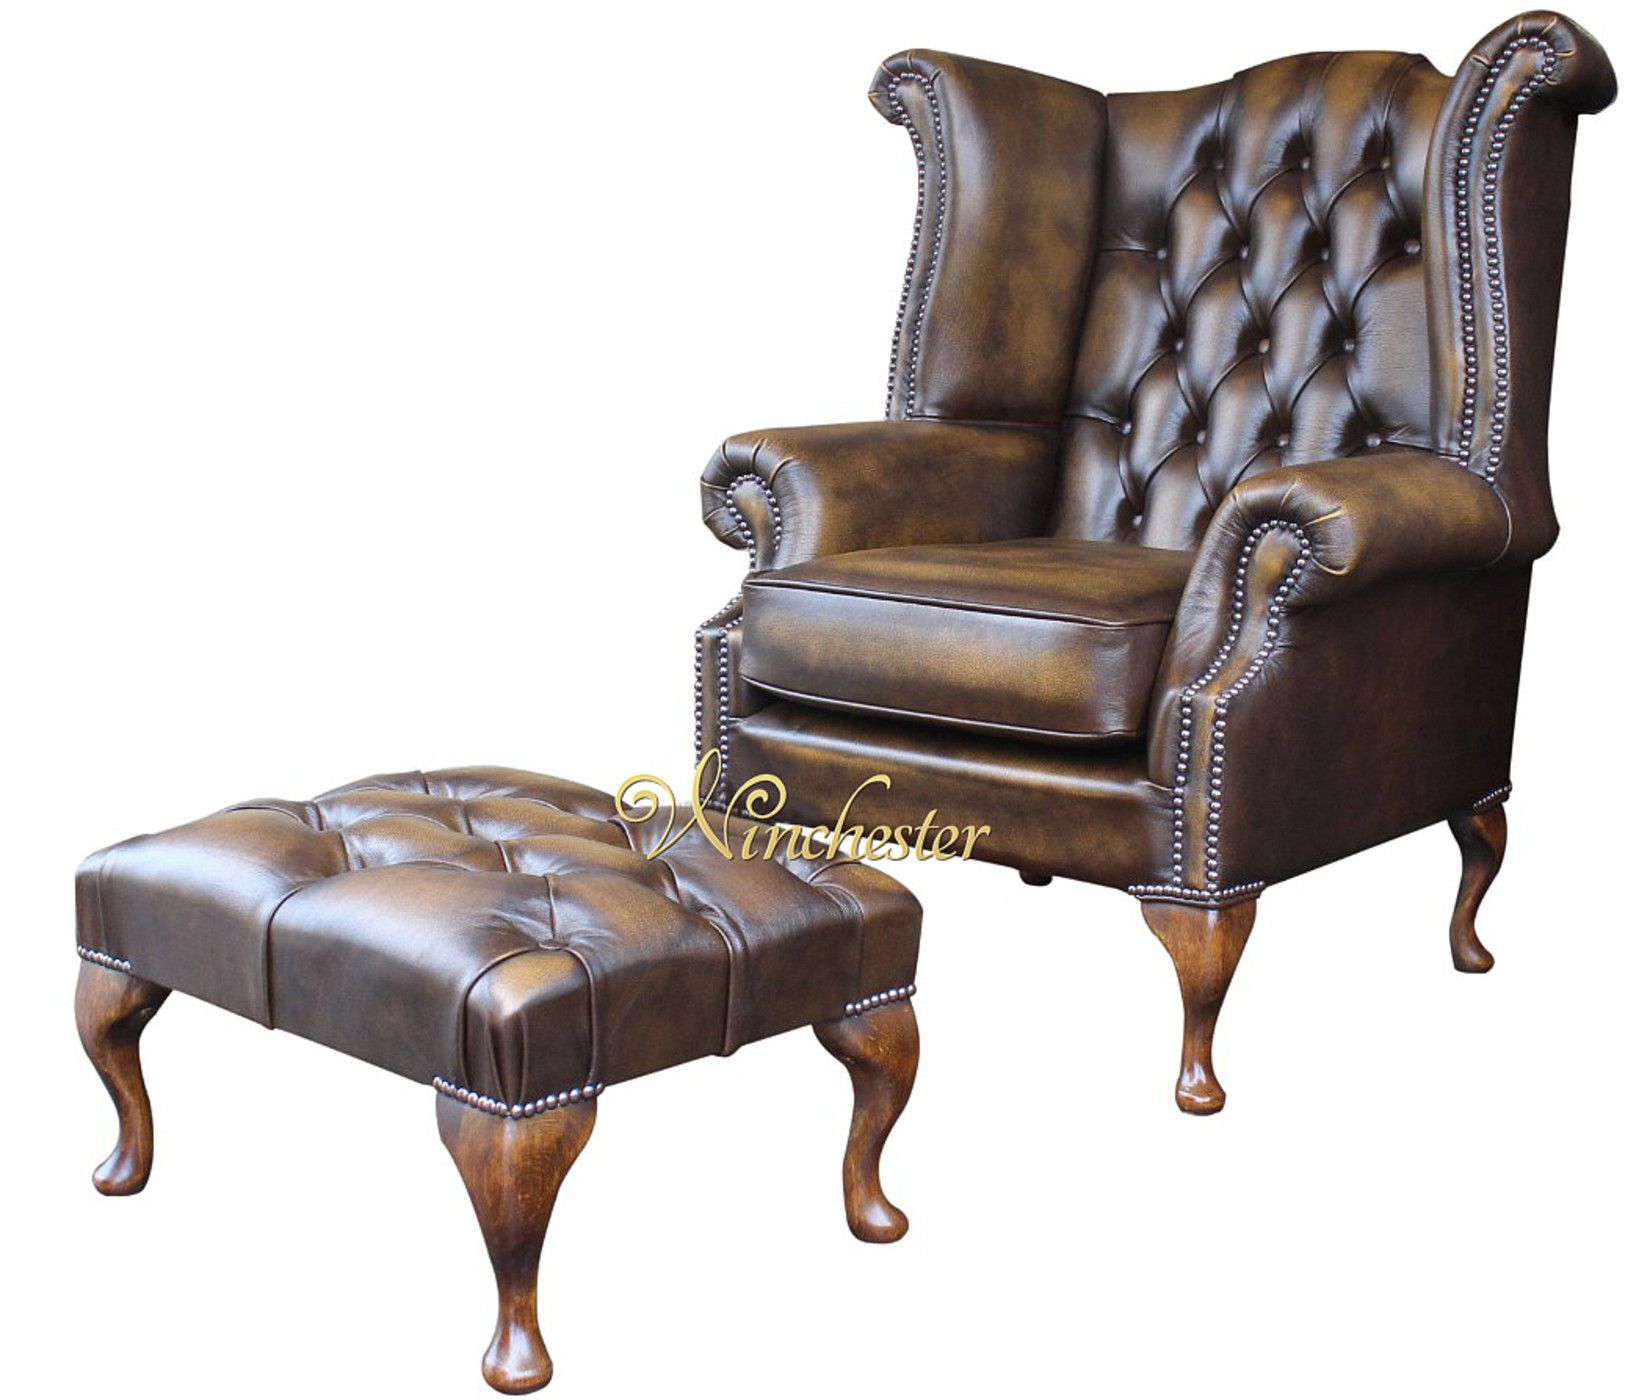 Chesterfield Queen Anne High Back Wing Chair Footstool Antique  Gold Leather Wc